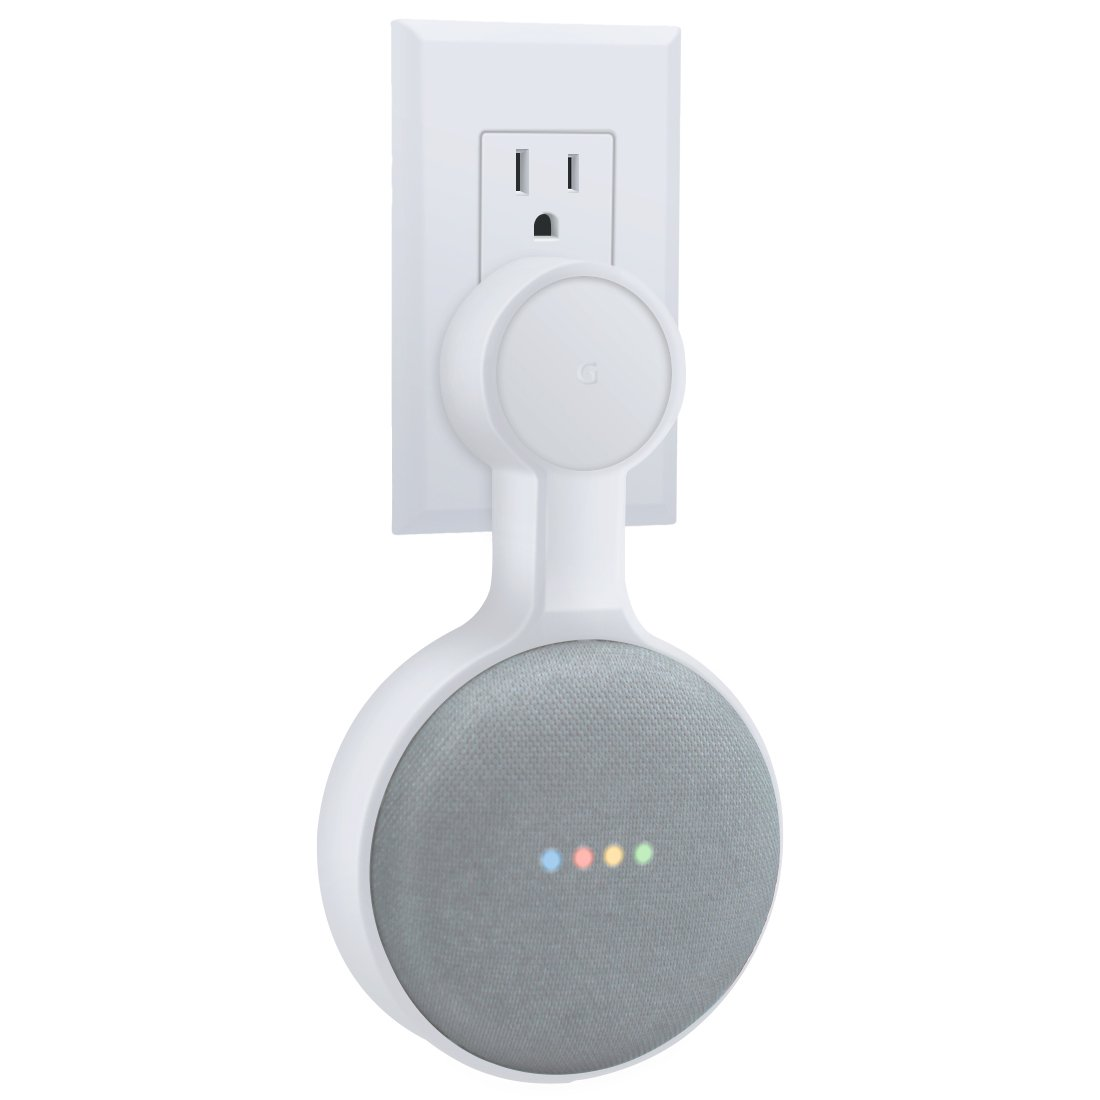 Amortek Outlet Wall Mount Holder For Google Home Mini, A Space Saving Accessories For Google Home Mini Voice Assistant (White) by Amor Tek